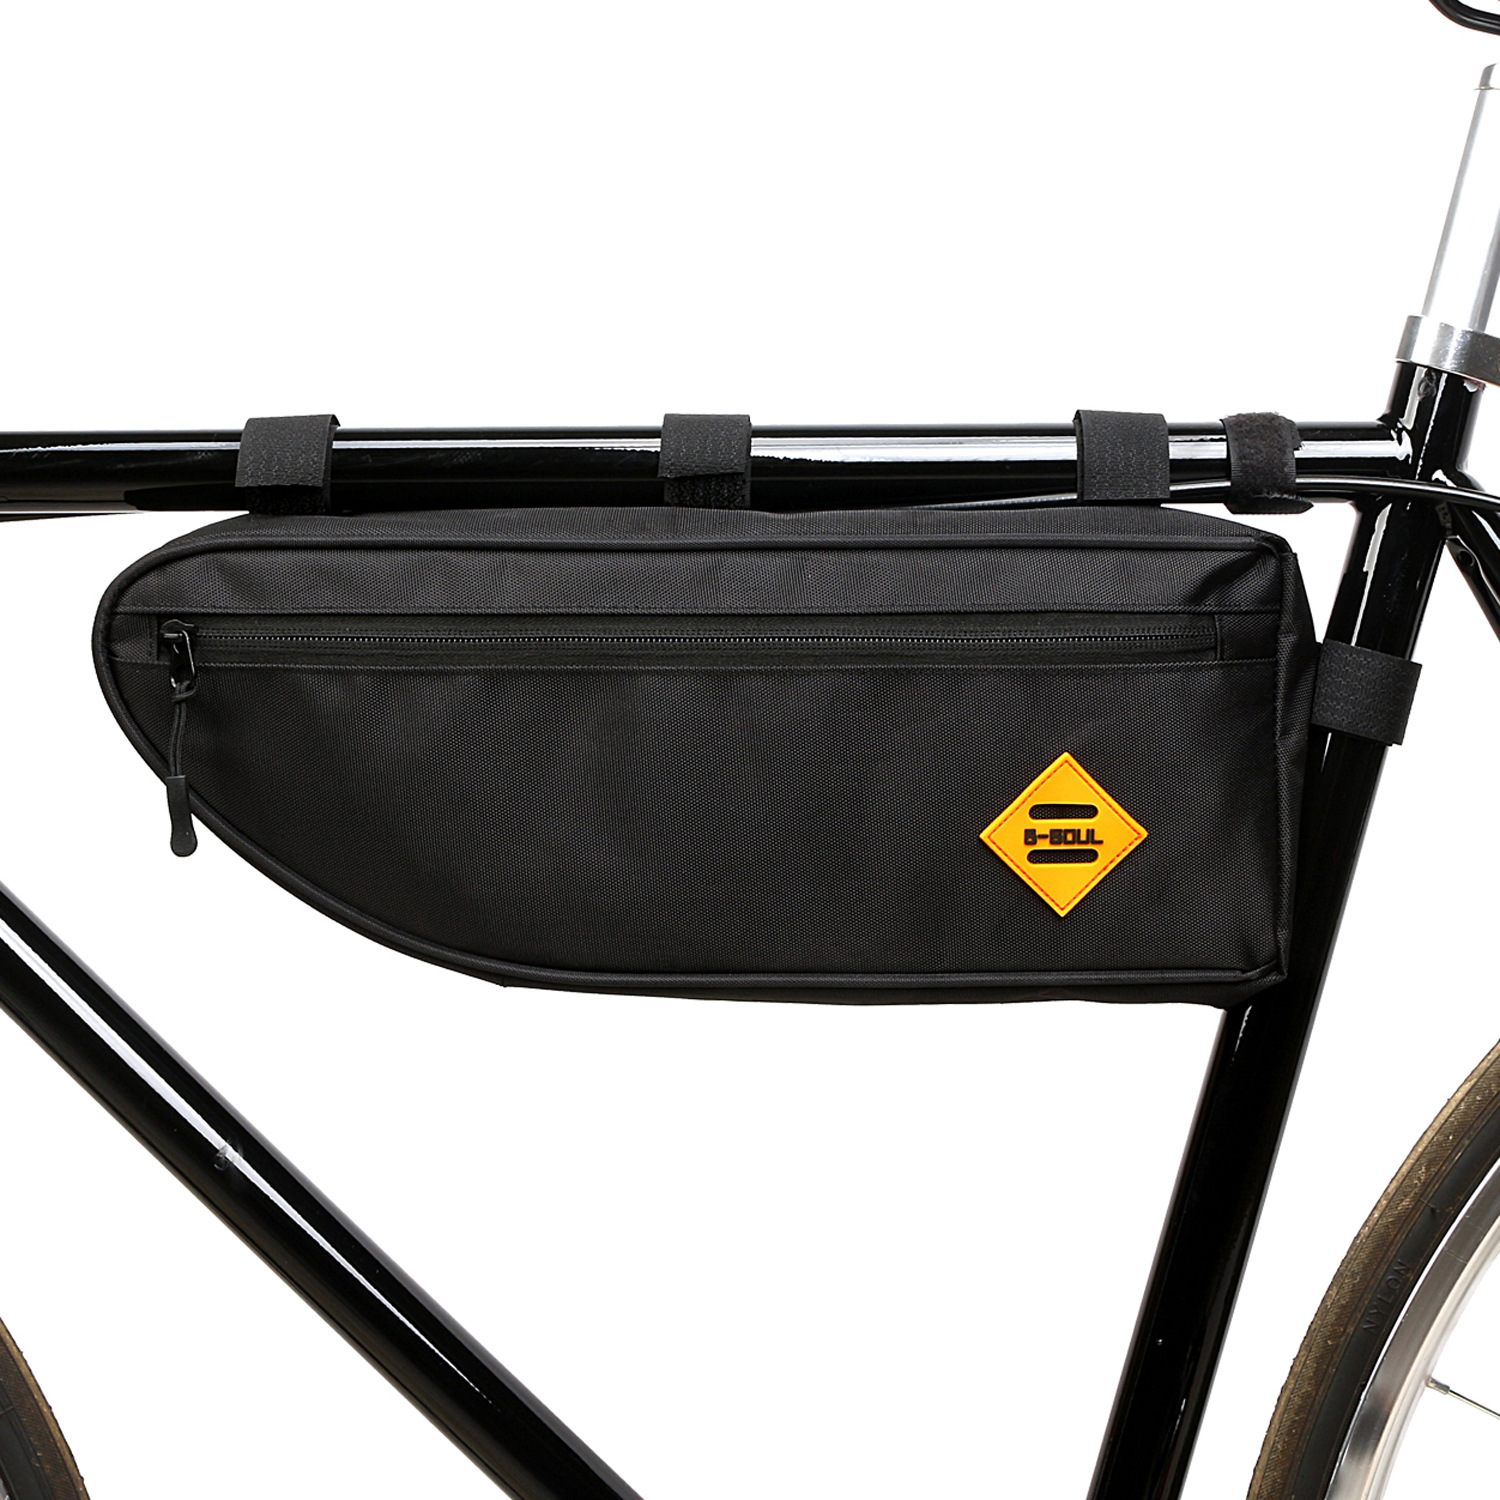 B SOUL Bicycle Triangle Bag Bike Frame Front Tube Bag Waterproof Pouch